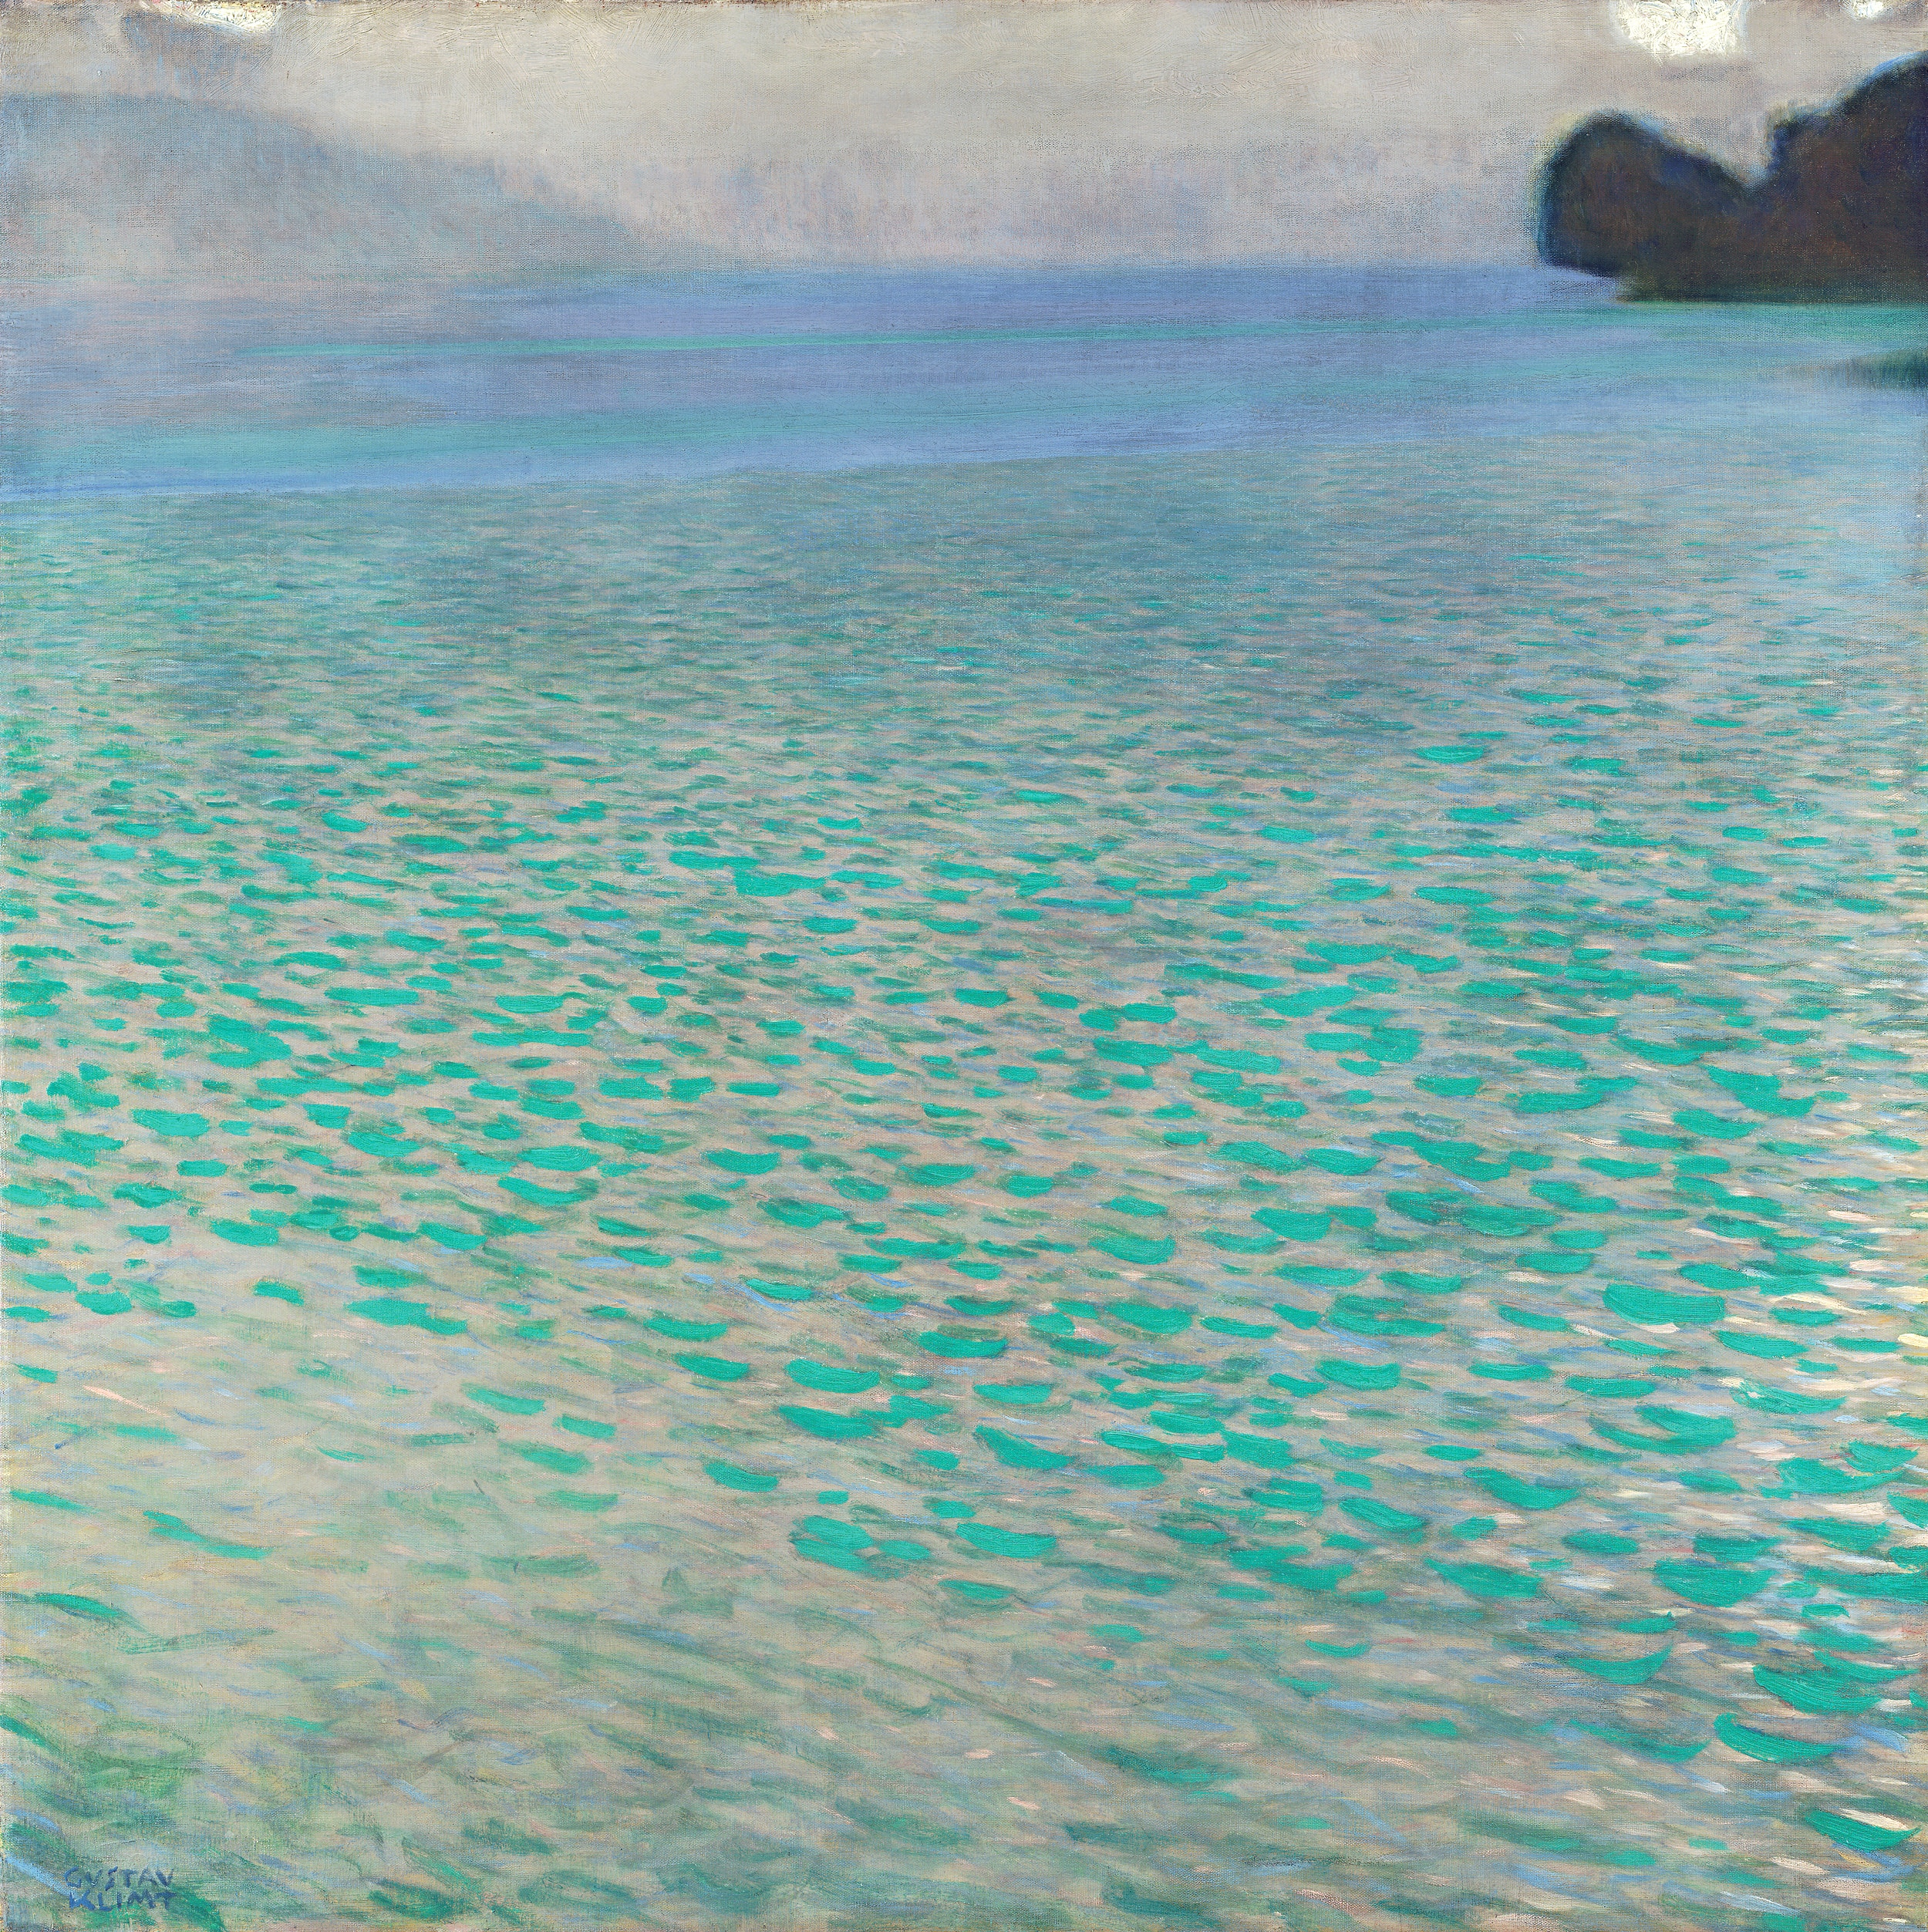 Gustav Klimt: Le Lac d'Atter, 1901, huile sur toile  (Leopold Museum, Vienne/Photo: Manfred Thumberger)